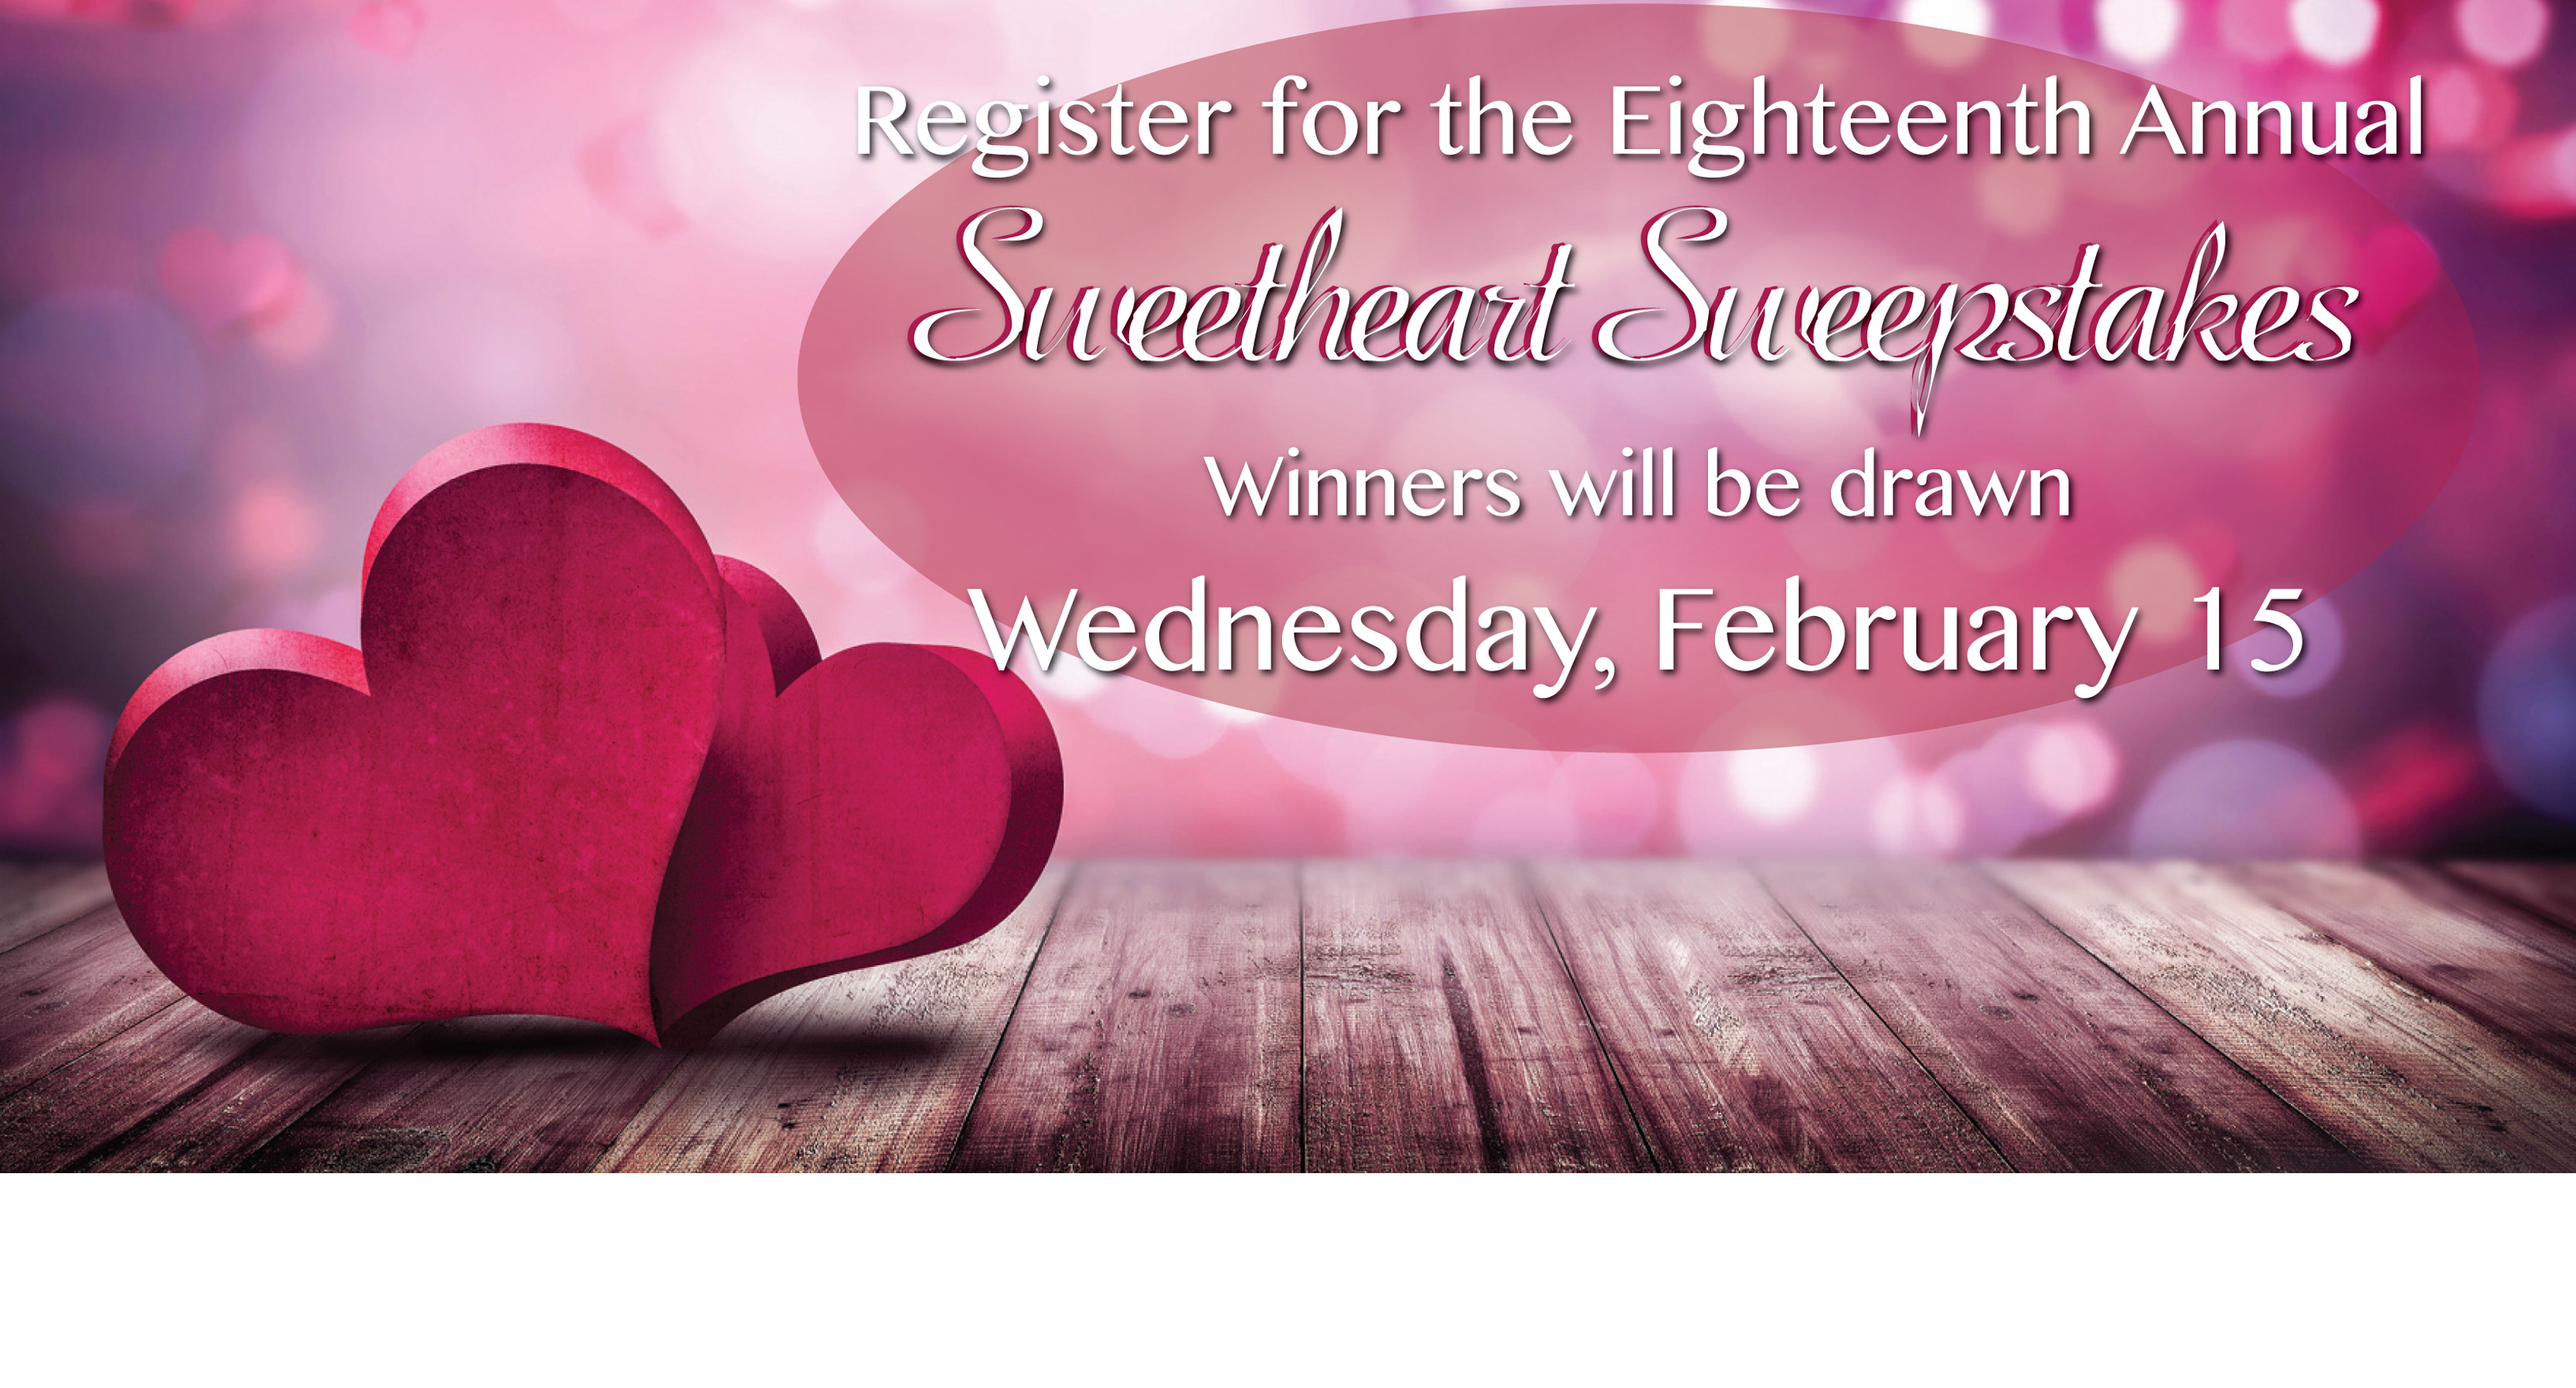 Sweethearts 1